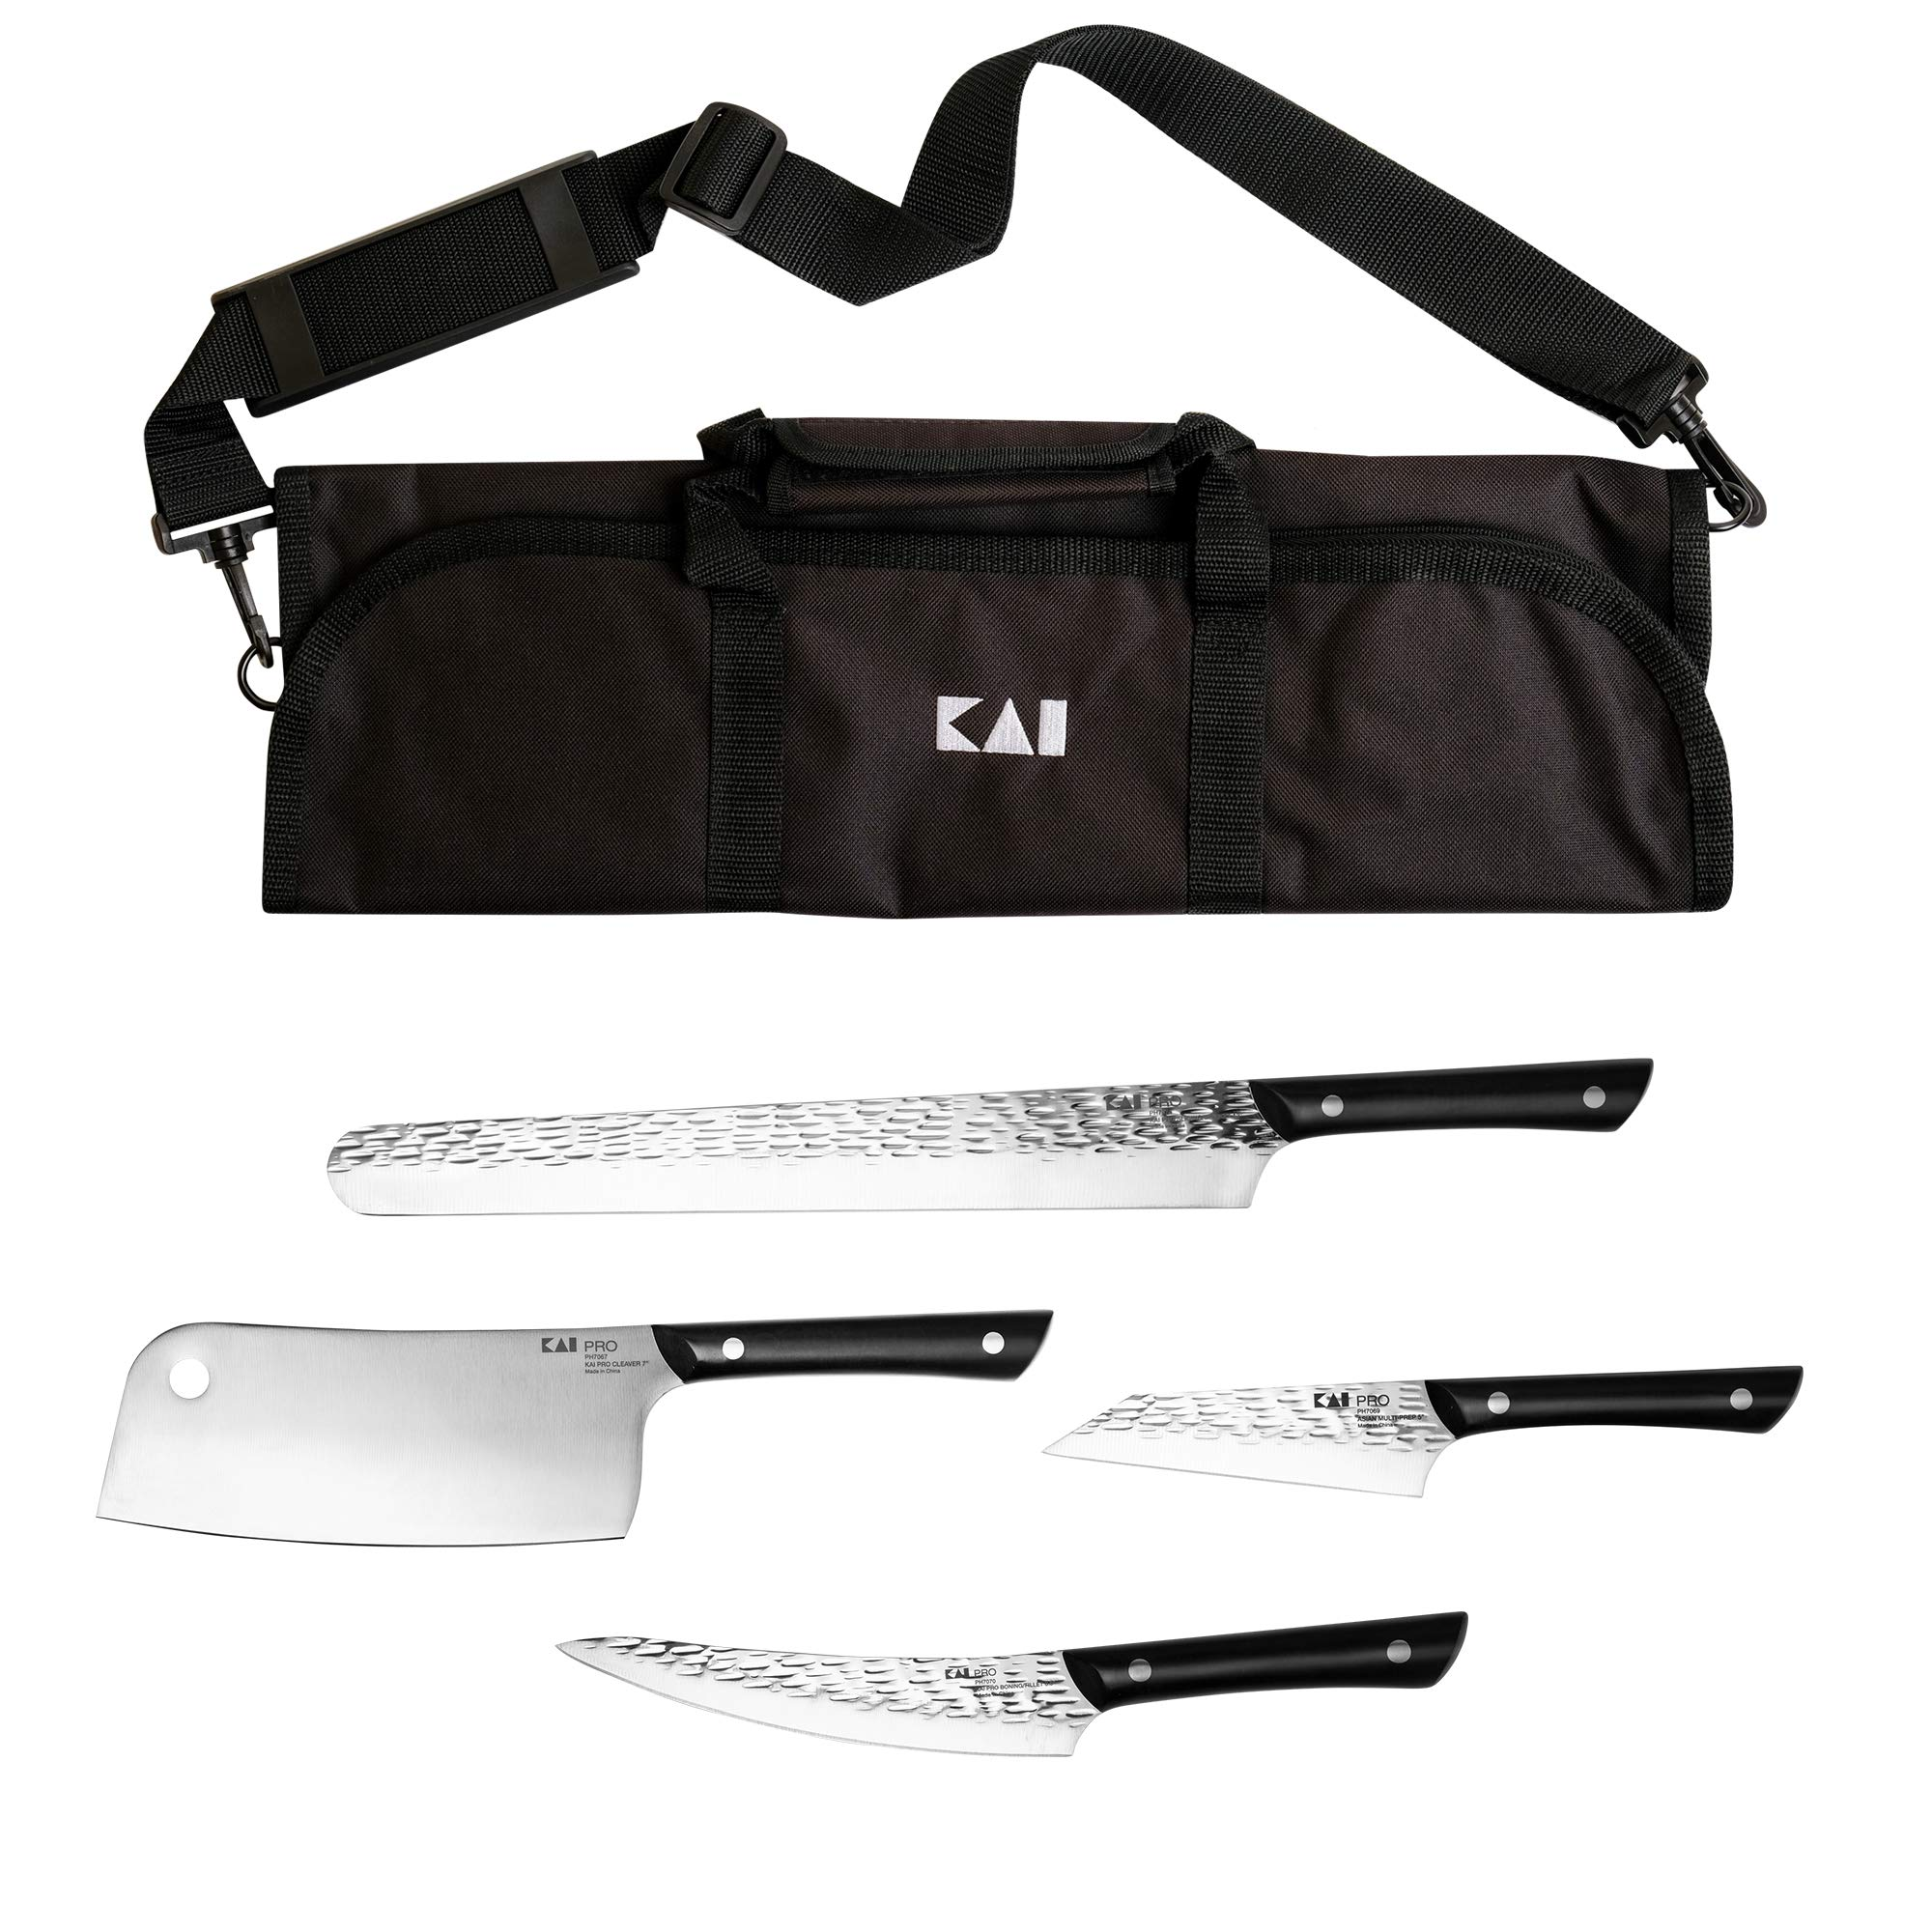 Kai Housewares 5-Piece BBQ Set, From the Makers of Shun; Includes 12-in Slicing/Brisket Knife, 7-in Cleaver, 6.5-in Boning/Fillet, 5-in Asian Multiprep, and Carrying Case; The Ultimate Grilling Set by Kai